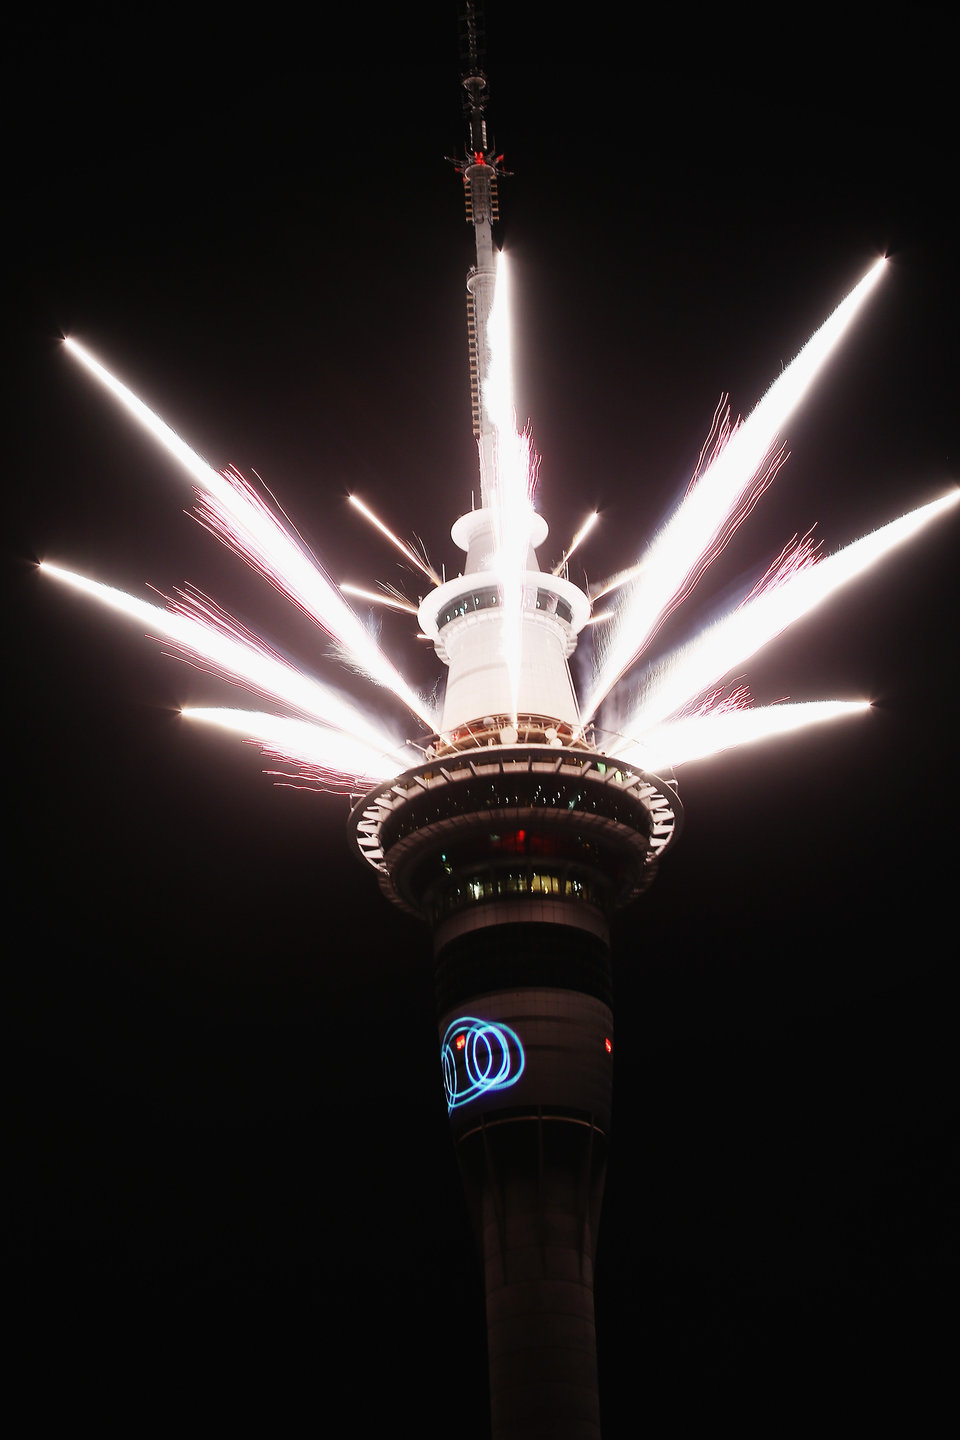 AUCKLAND, NEW ZEALAND - JANUARY 01: A fireworks display is launched from the Auckland Sky Tower during New Year's Eve celebrations on January 1, 2016 in Auckland, New Zealand. (Photo by Hannah Peters/Getty Images)